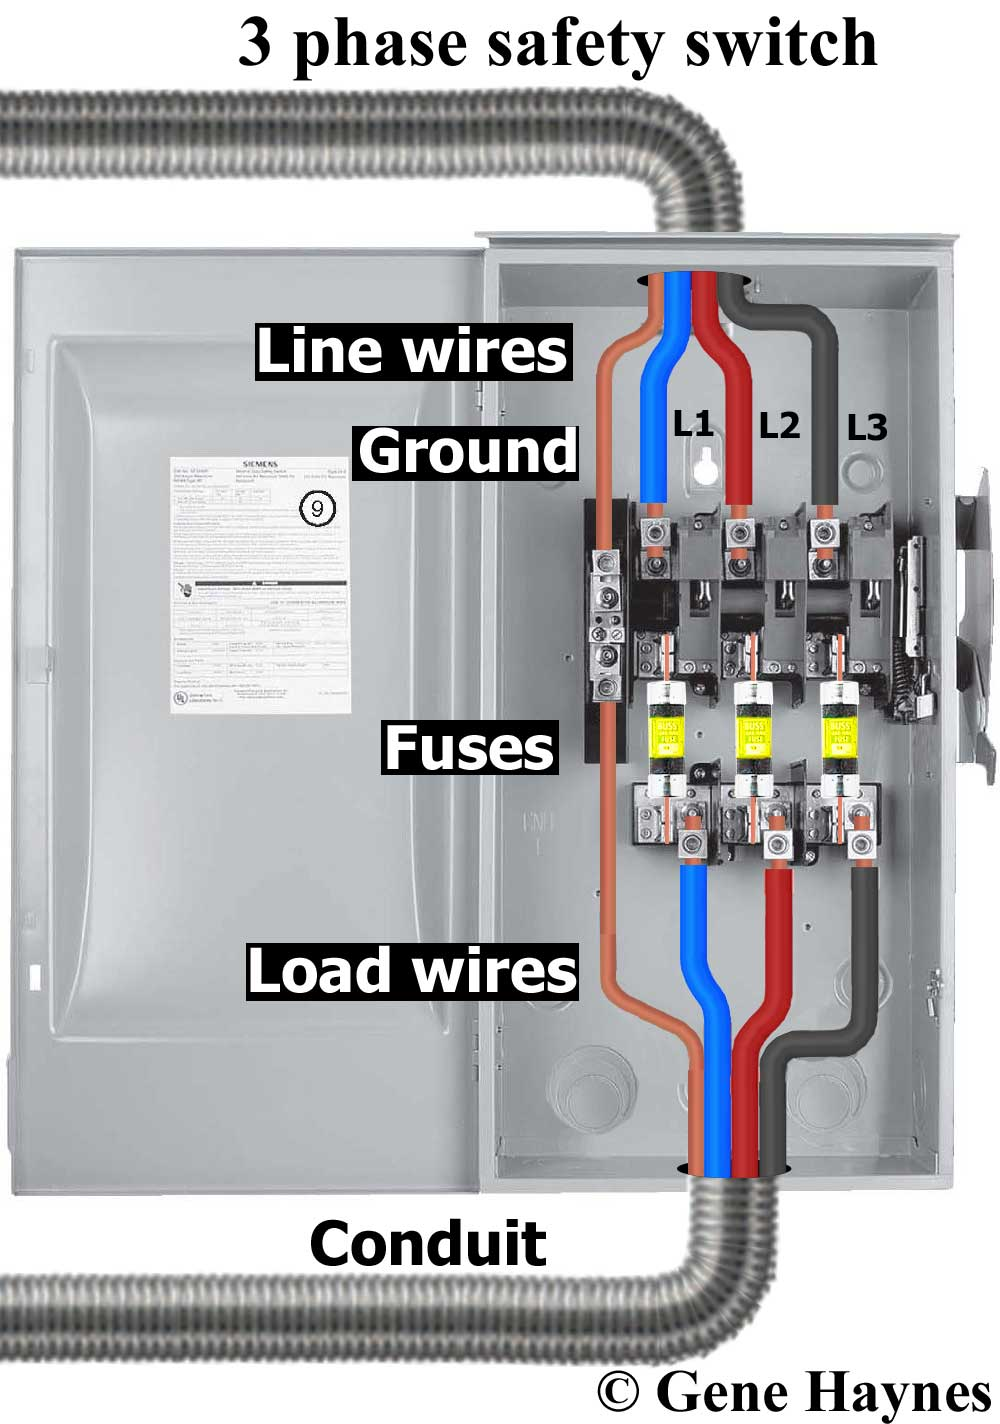 Fuse Box Safety - Wiring Diagram M10 Old Fuse Box Guide on